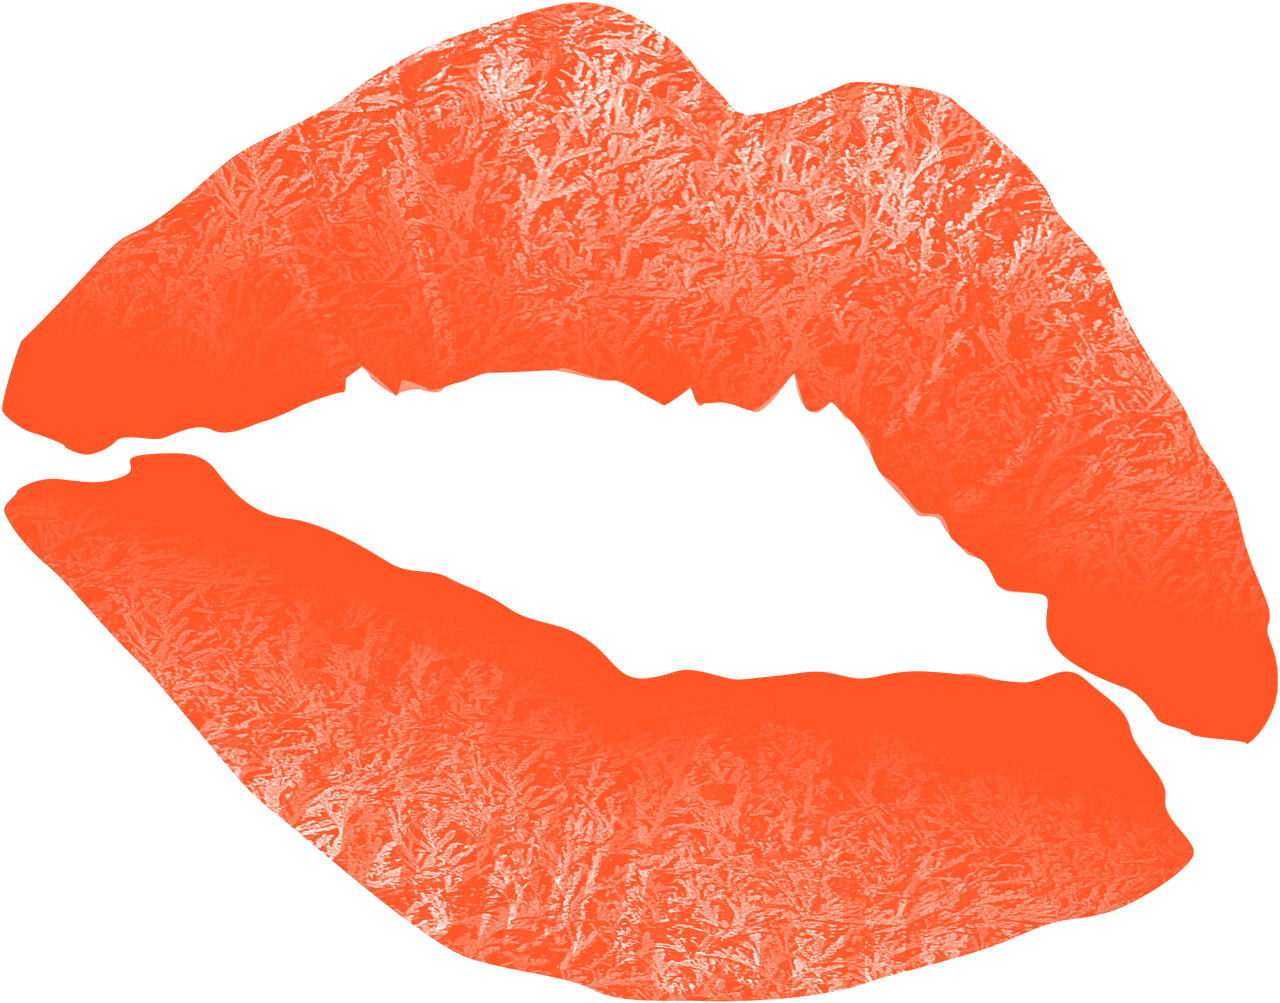 Kiss mouth lips text. Lip clipart orange